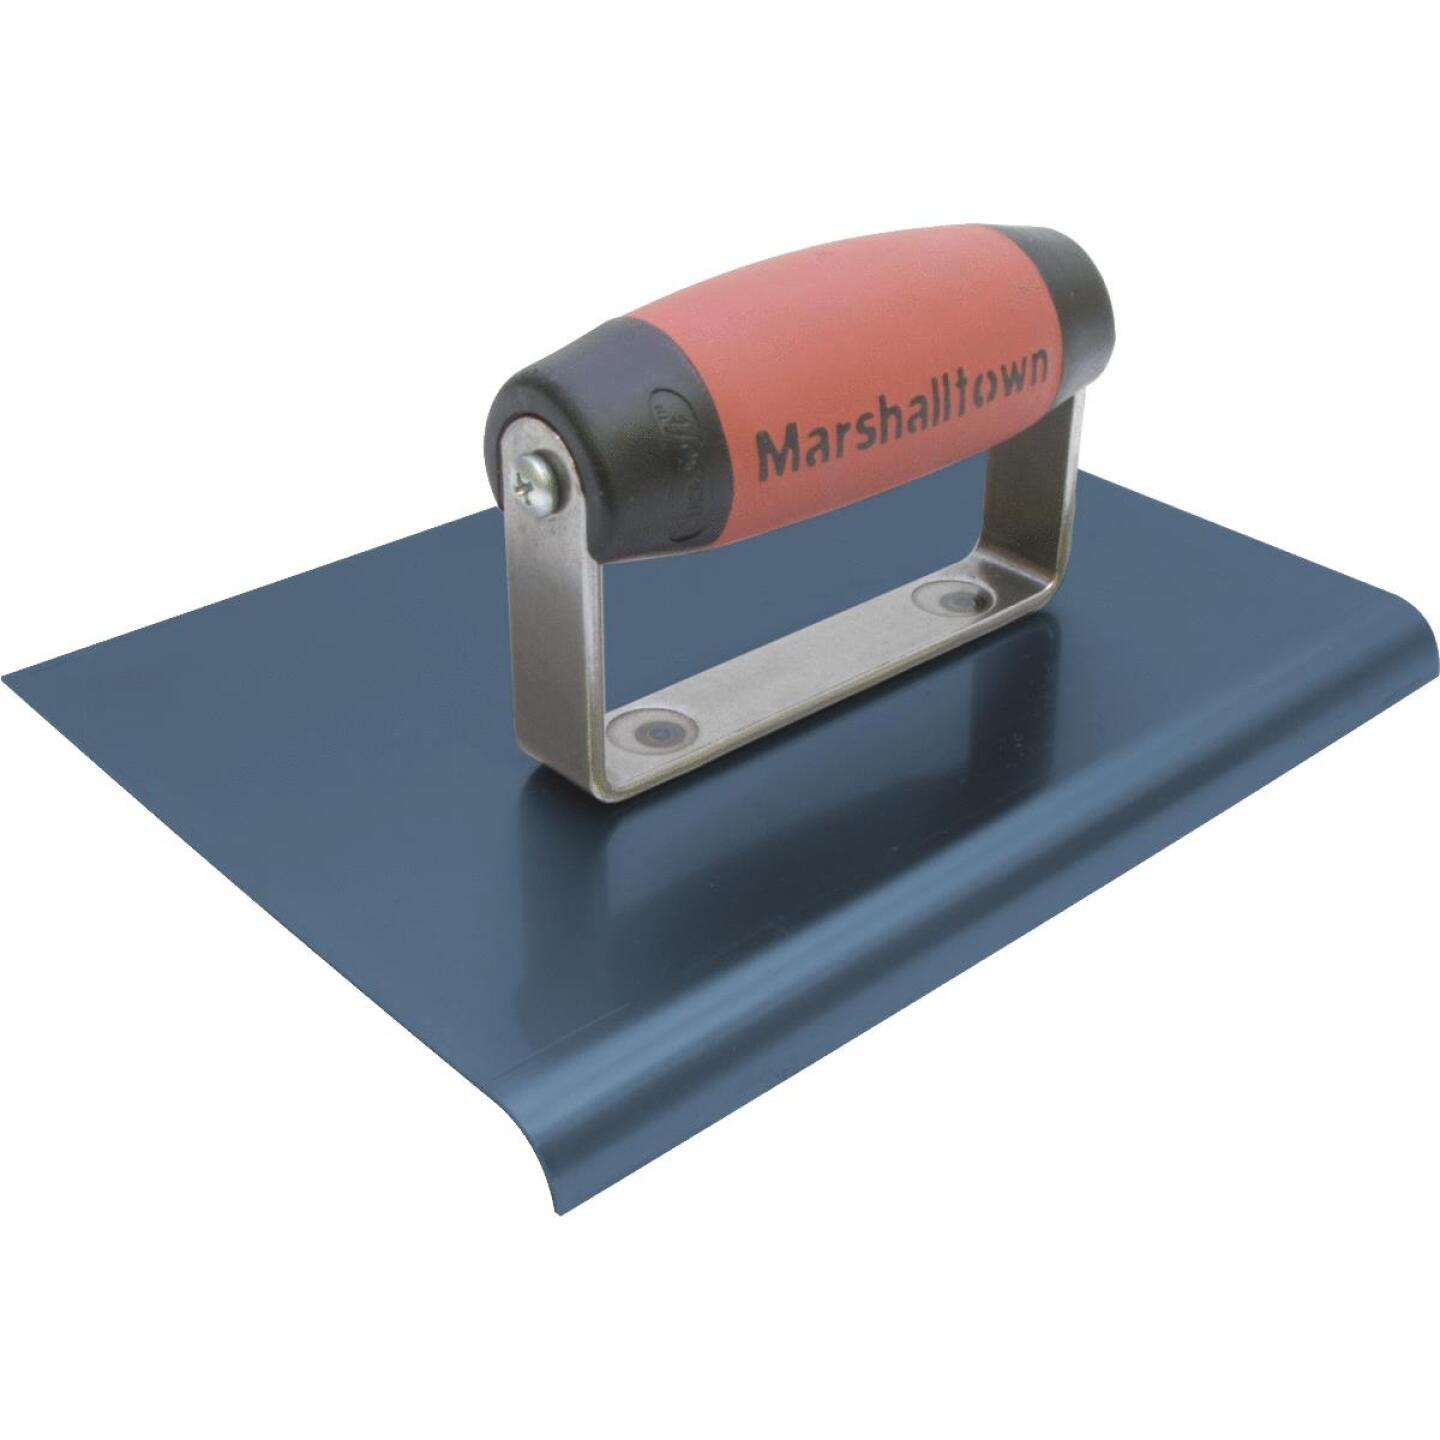 Marshalltown Blue Steel 6 In. x 4 In. Straight End Edger Image 1